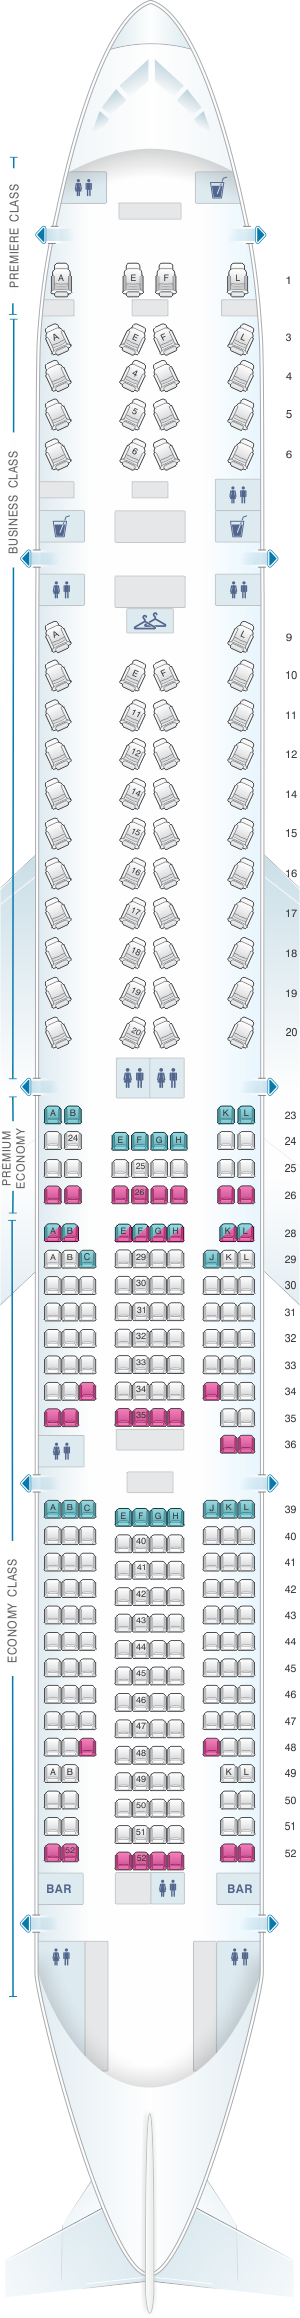 Seat map for Air France Boeing B777 300 International Long-Haul 296pax